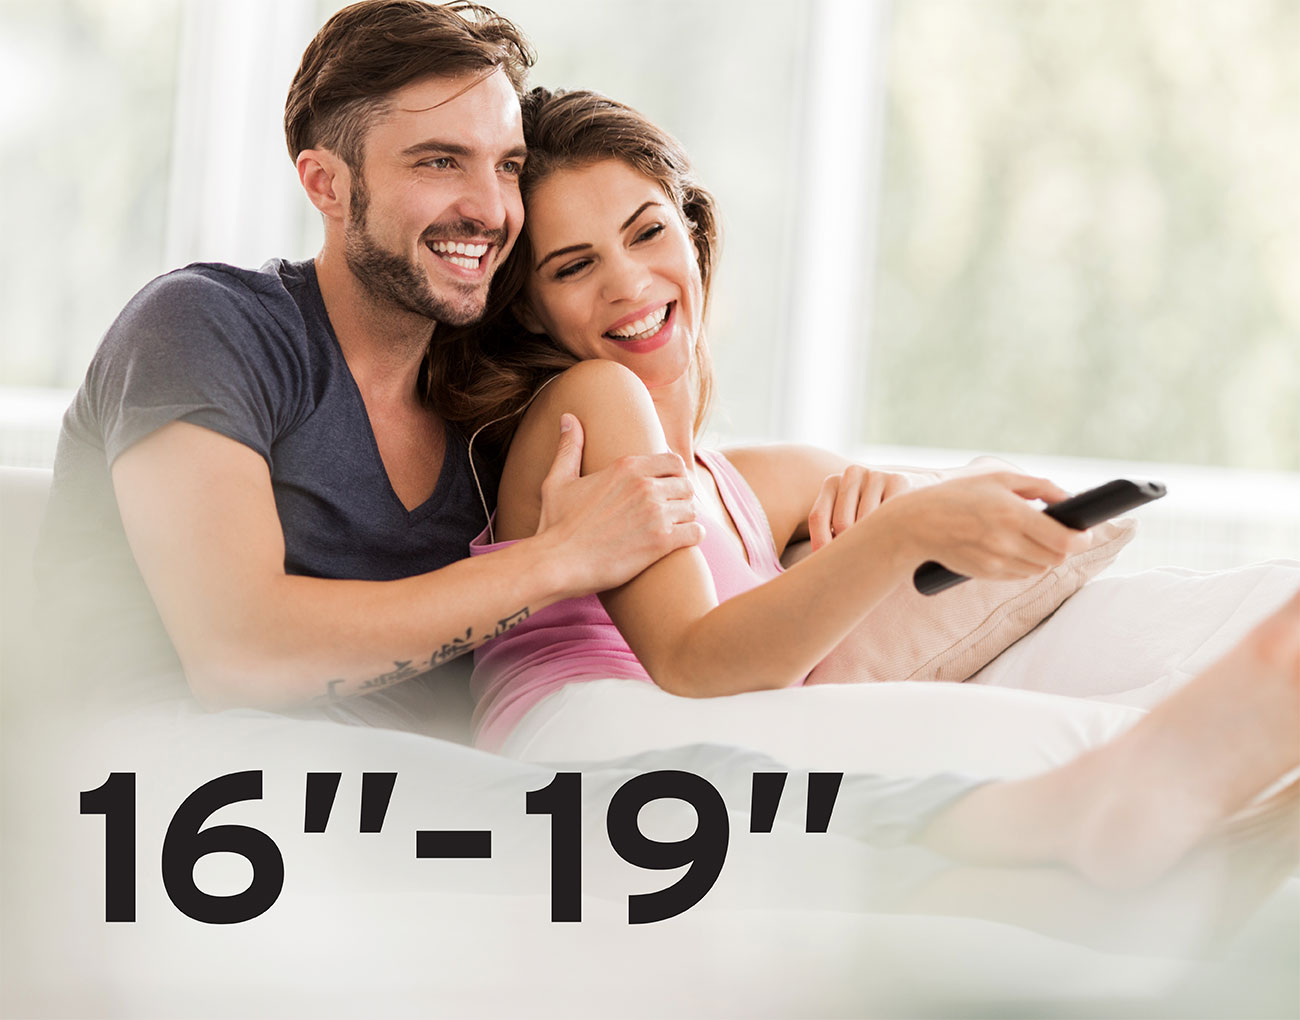 16-19-dating-sites